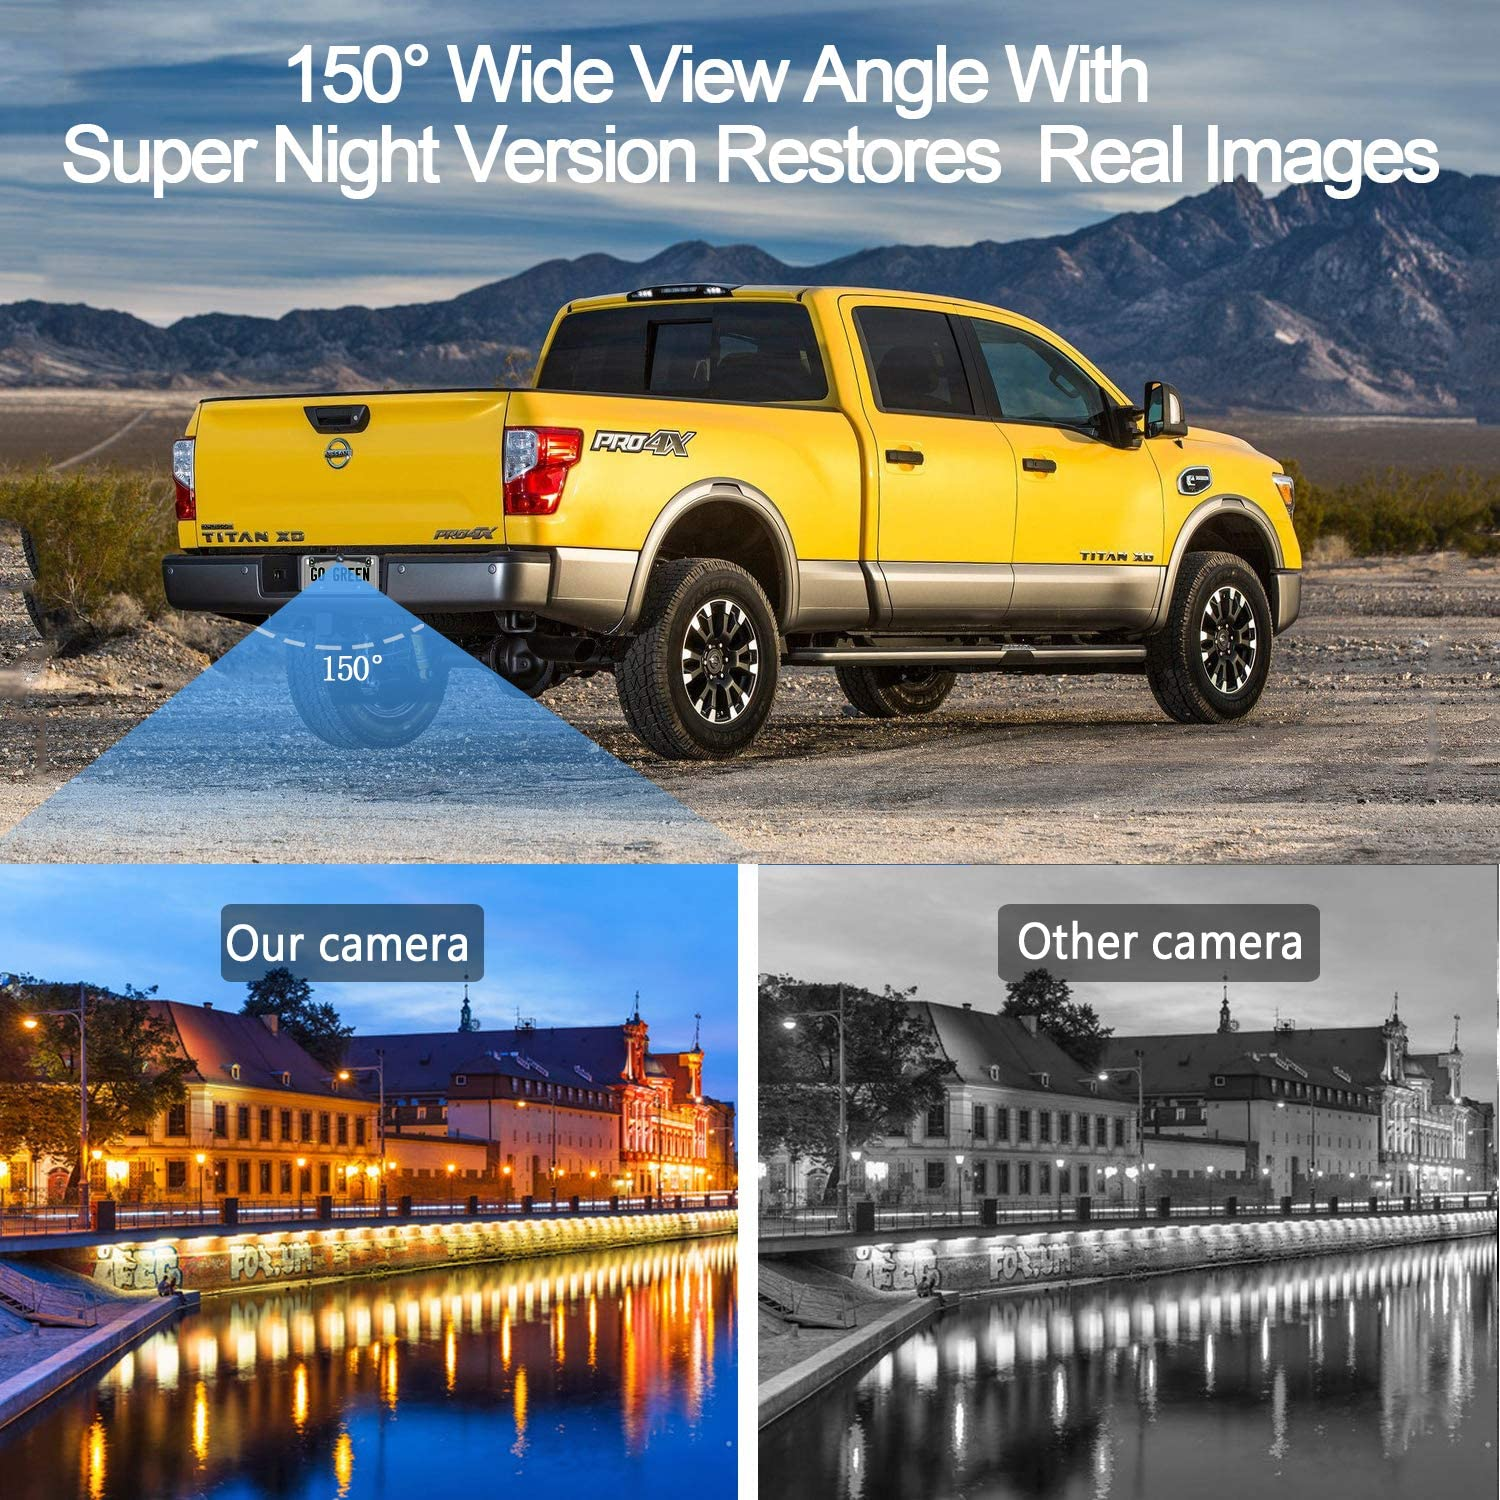 Amtifo HD 1080P Digital Wireless Backup Camera System with 5 Monitor for Cars,Pickups,Trucks,Small RVs,Campers,Rear//Front View,Guide Lines On//Off,IP69 Waterproof